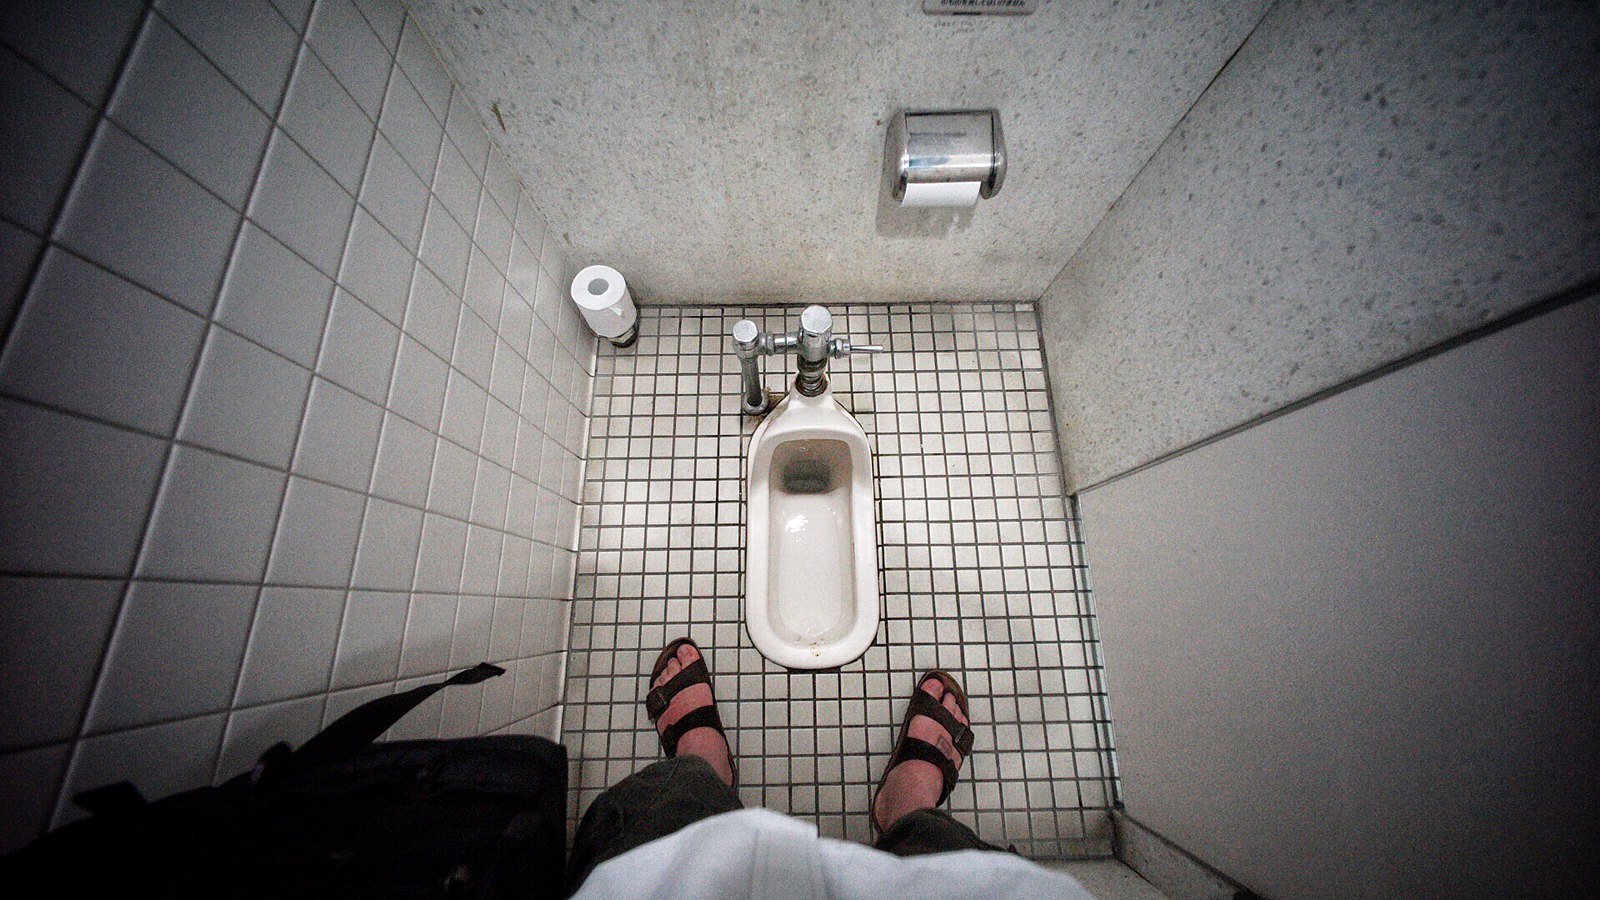 MJ vs. Japanese Toilet: Round 1! #japan15 #SonyA7 #Voigtlander12mm #UltraWideAngle #foto